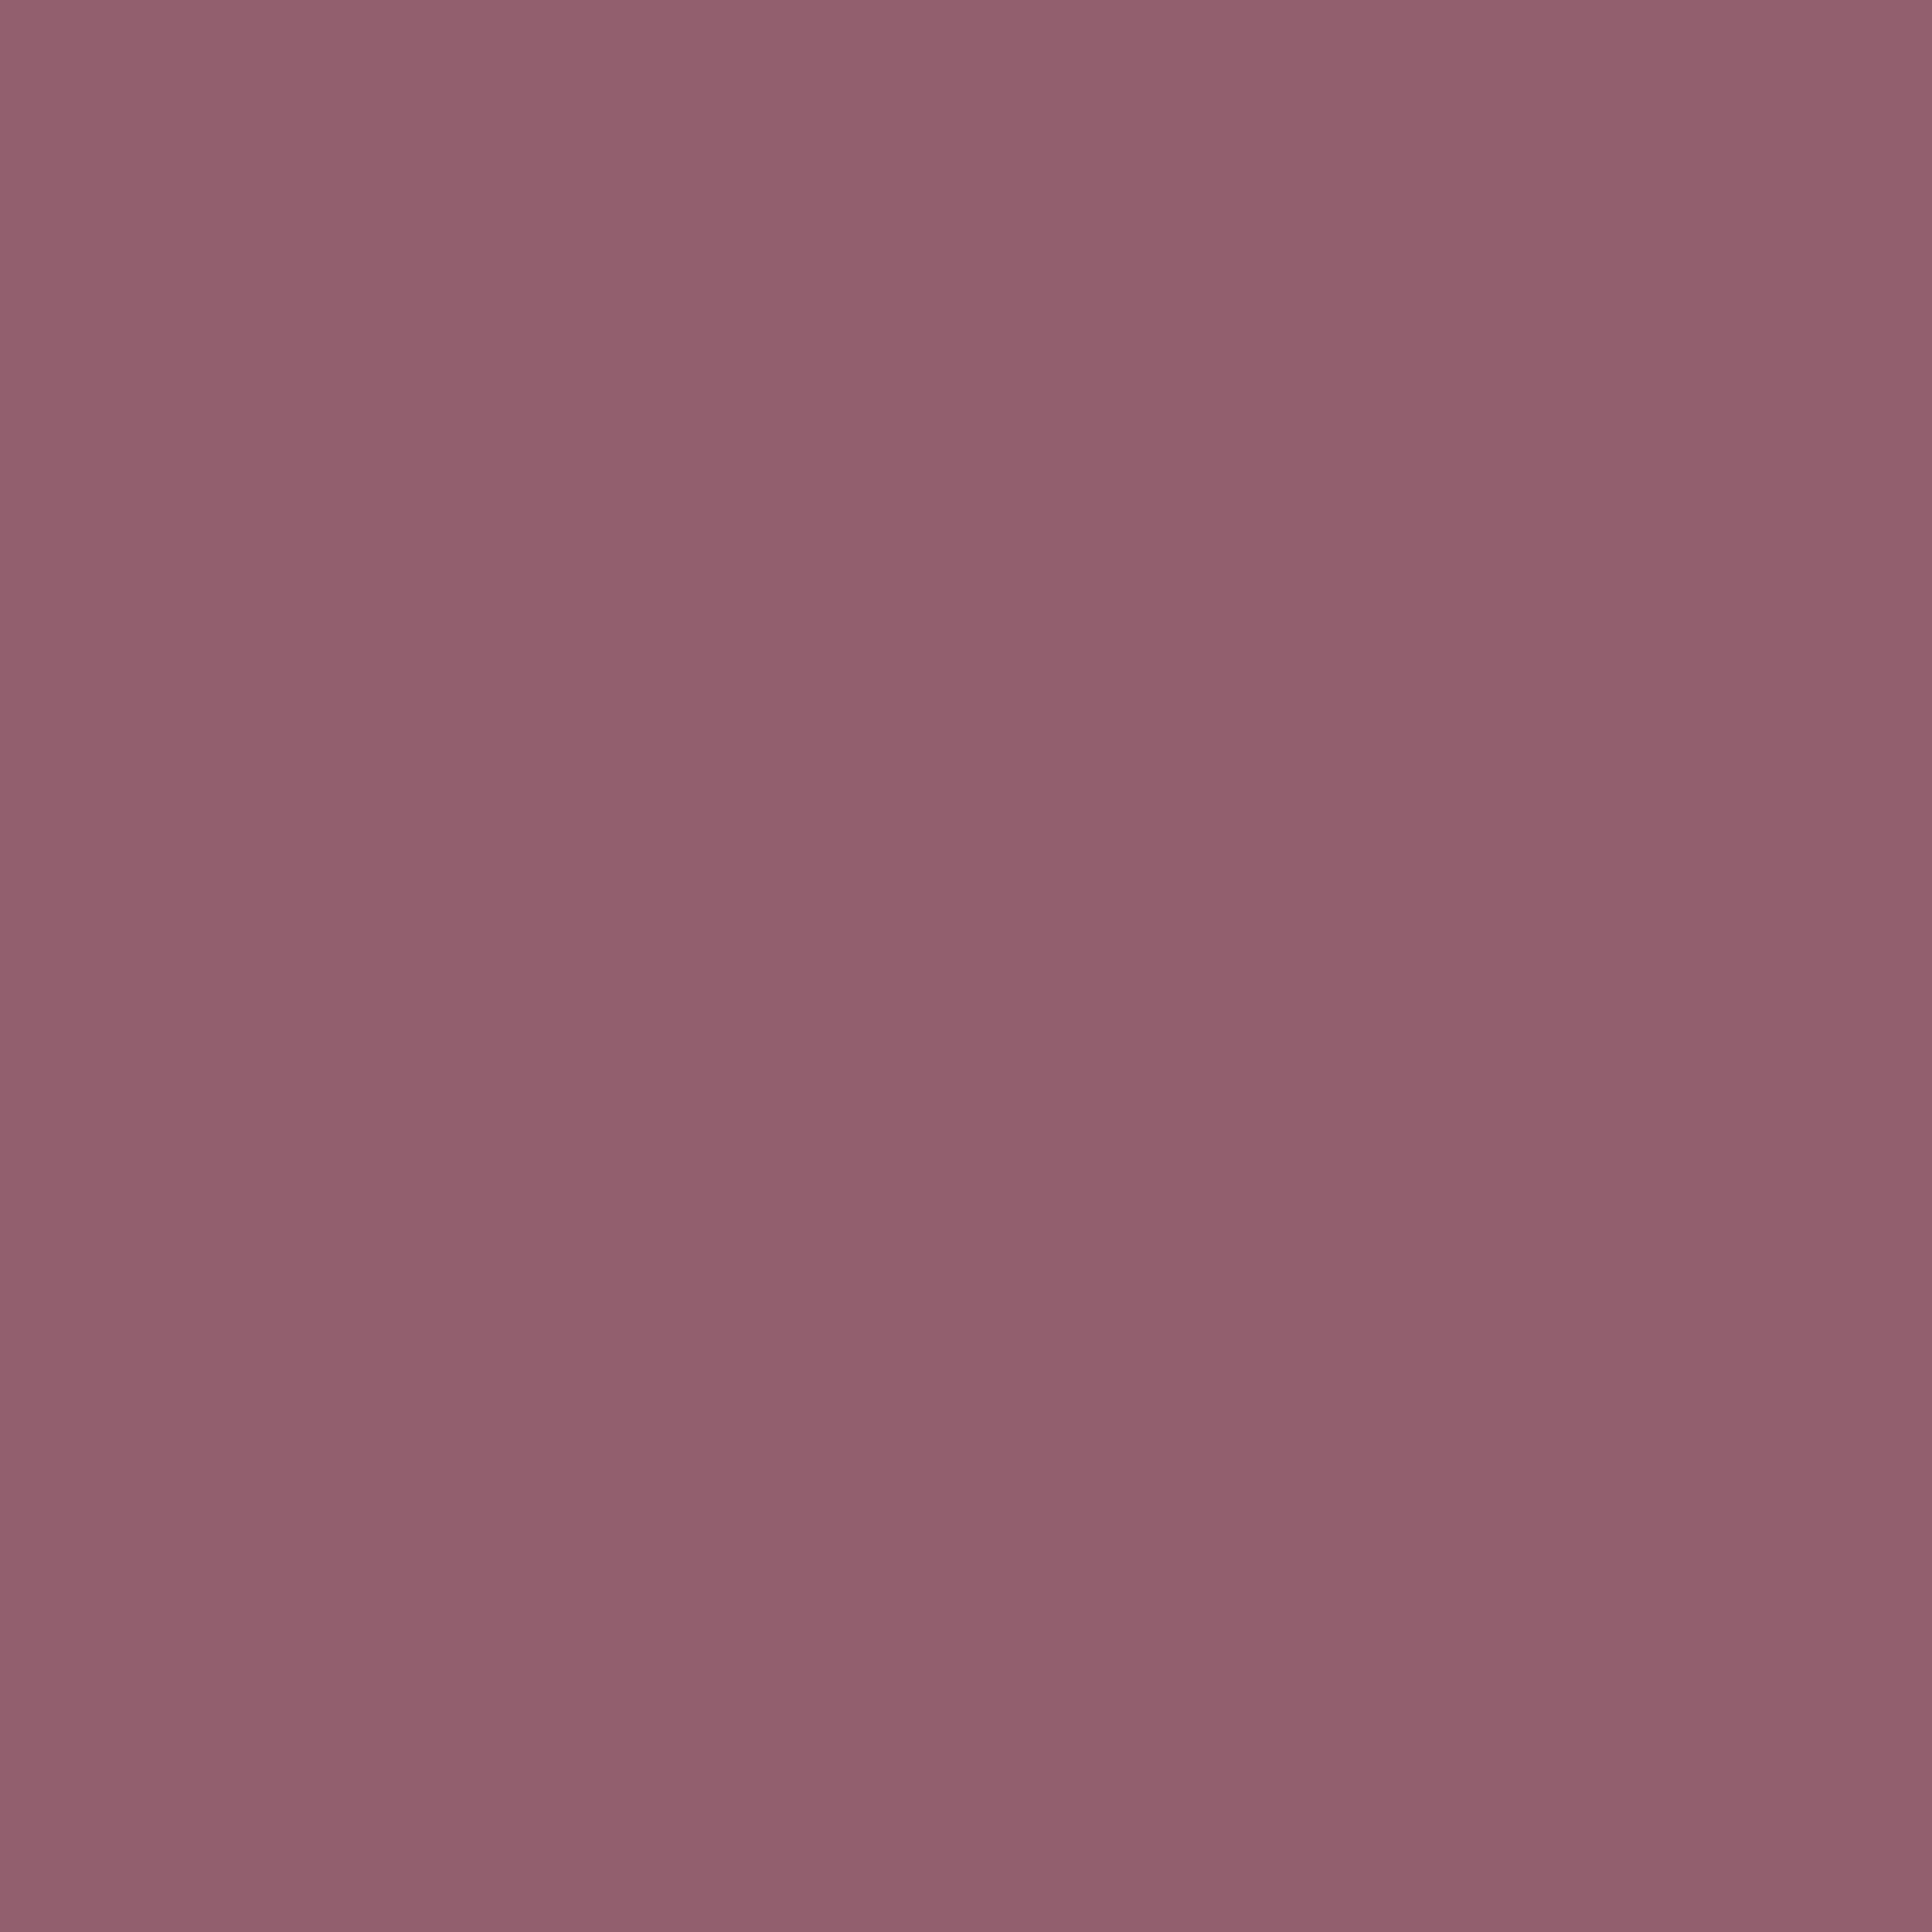 2048x2048 Mauve Taupe Solid Color Background